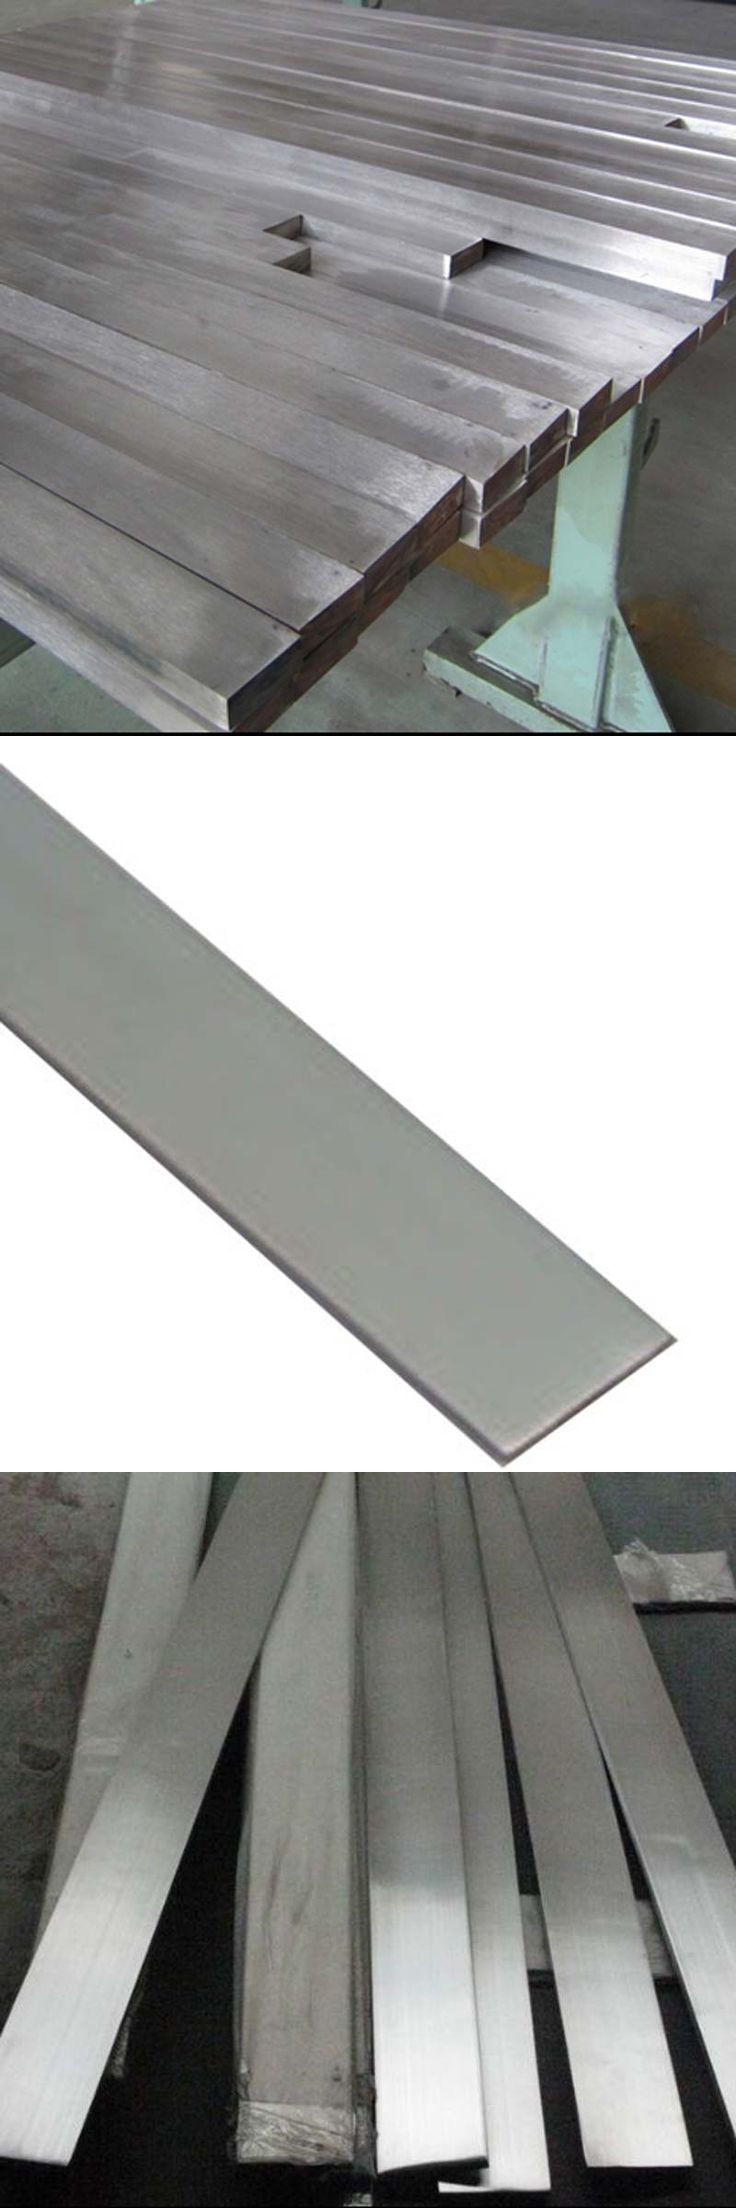 3*40mm 304 stainless steel flat bar,stainless sheet